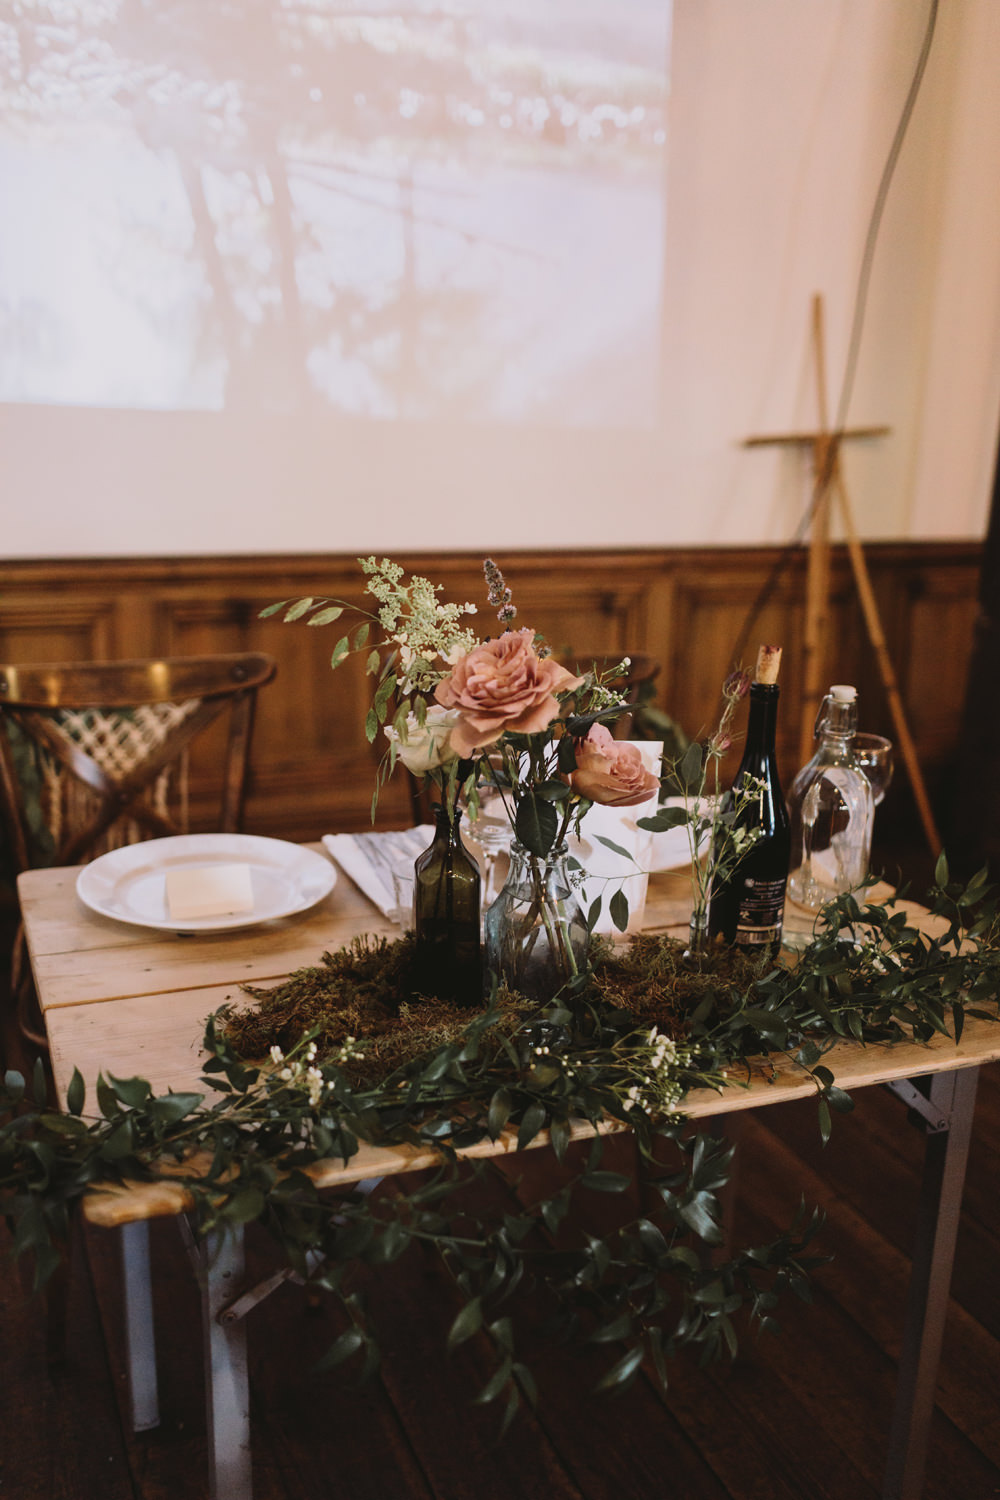 Table Centre Moss Bottle Rose Flowers Floral Foliage Tram House Wedding Luke Hayden Photography